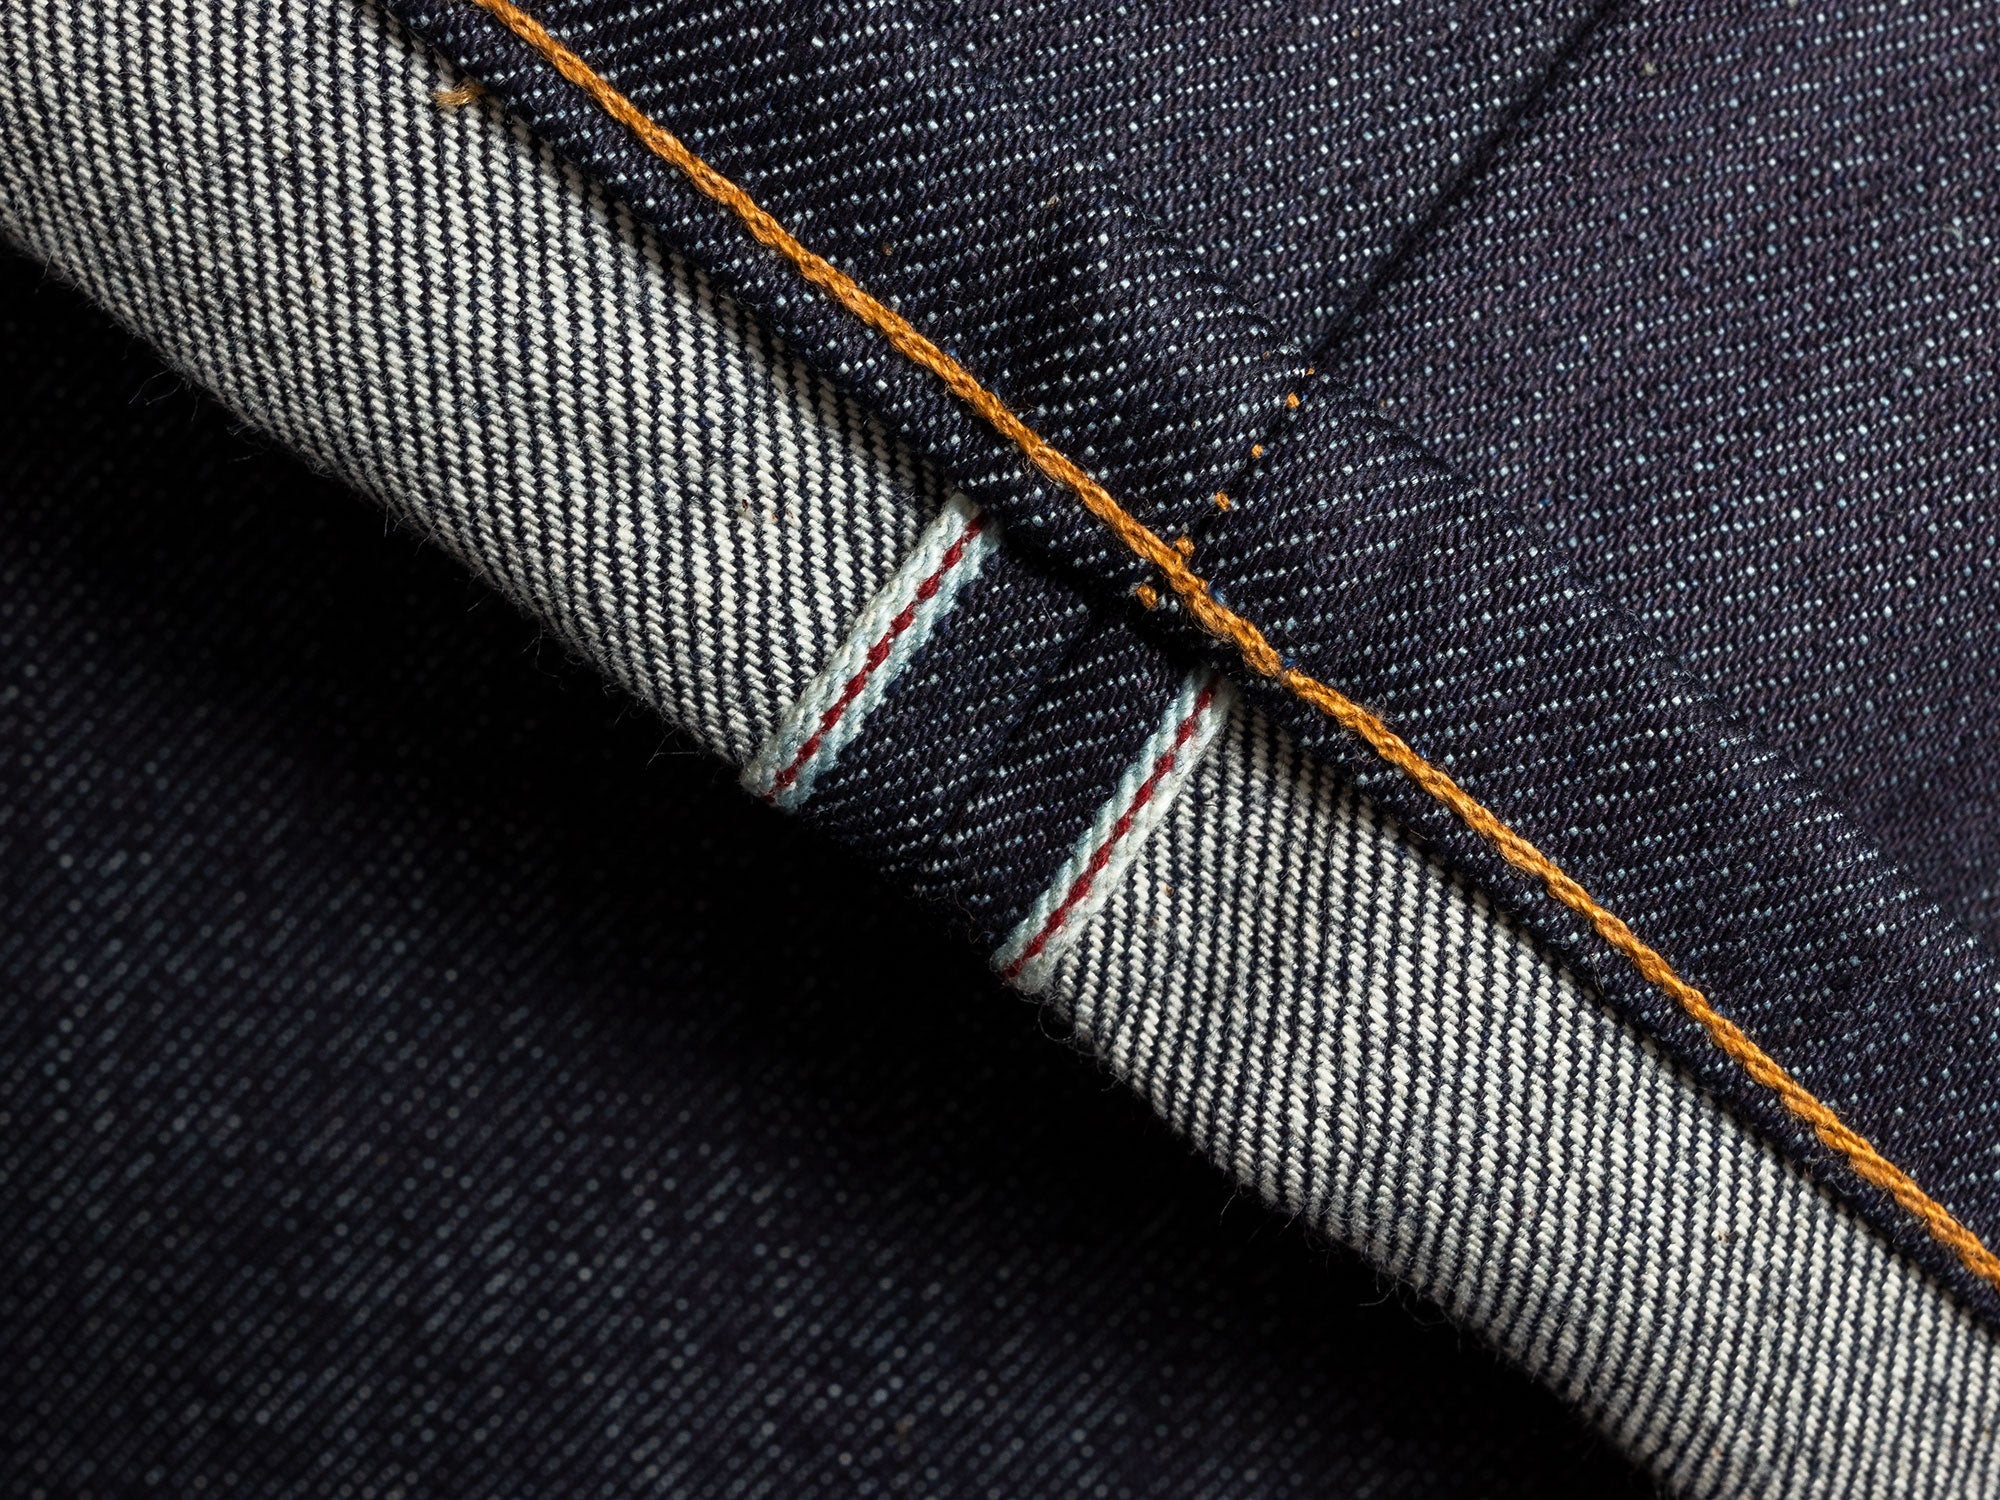 Selvedge denim cuff white weft